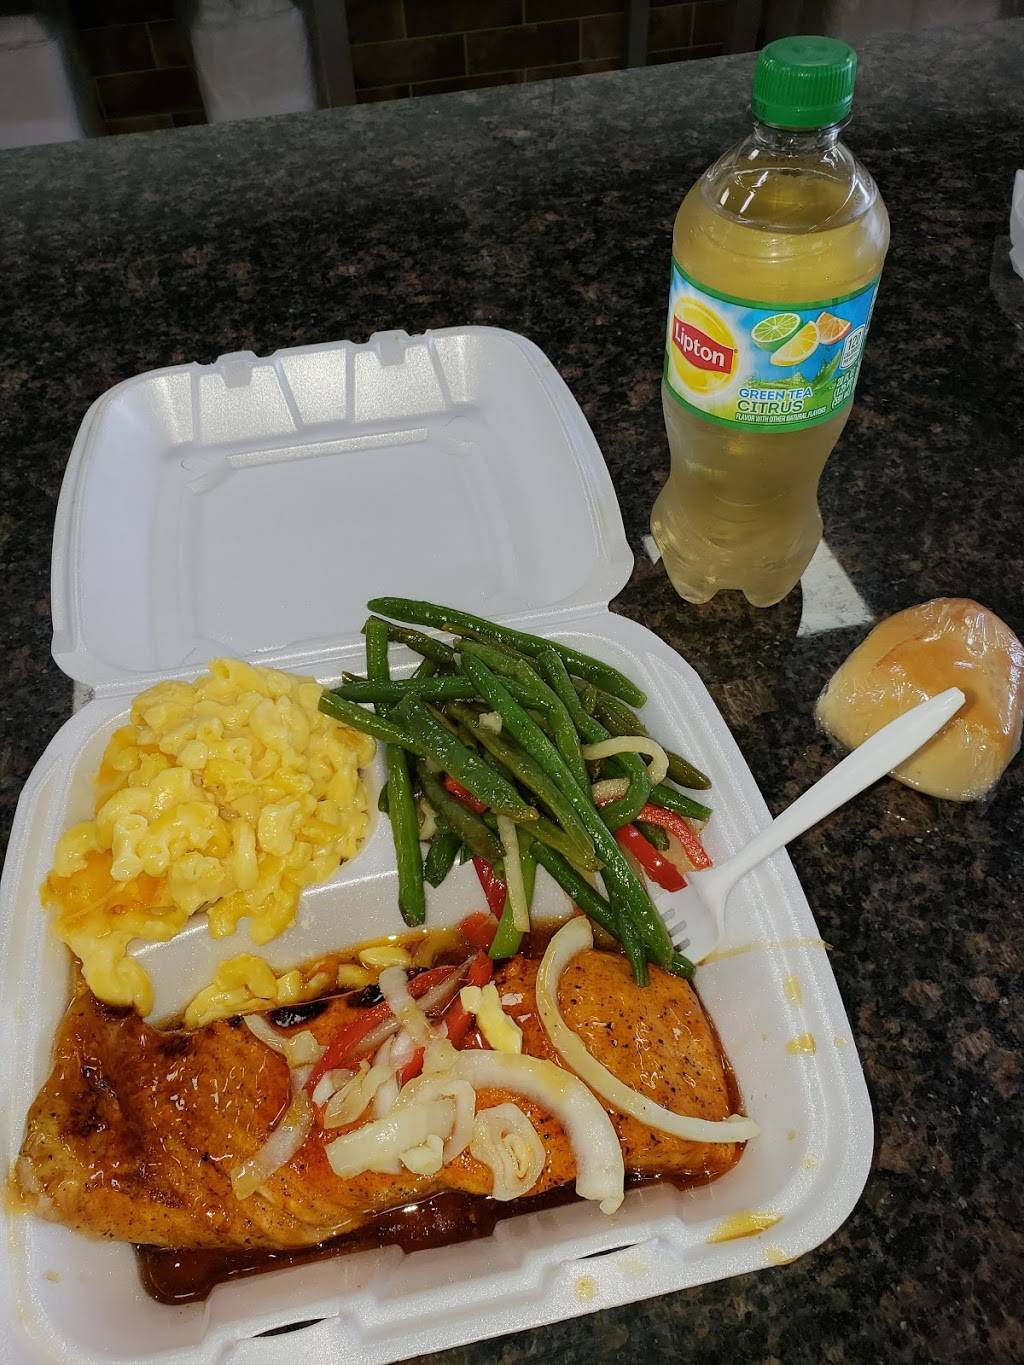 South Pride seafood and soul   restaurant   5201 MD-210, Oxon Hill, MD 20745, USA   3018393300 OR +1 301-839-3300